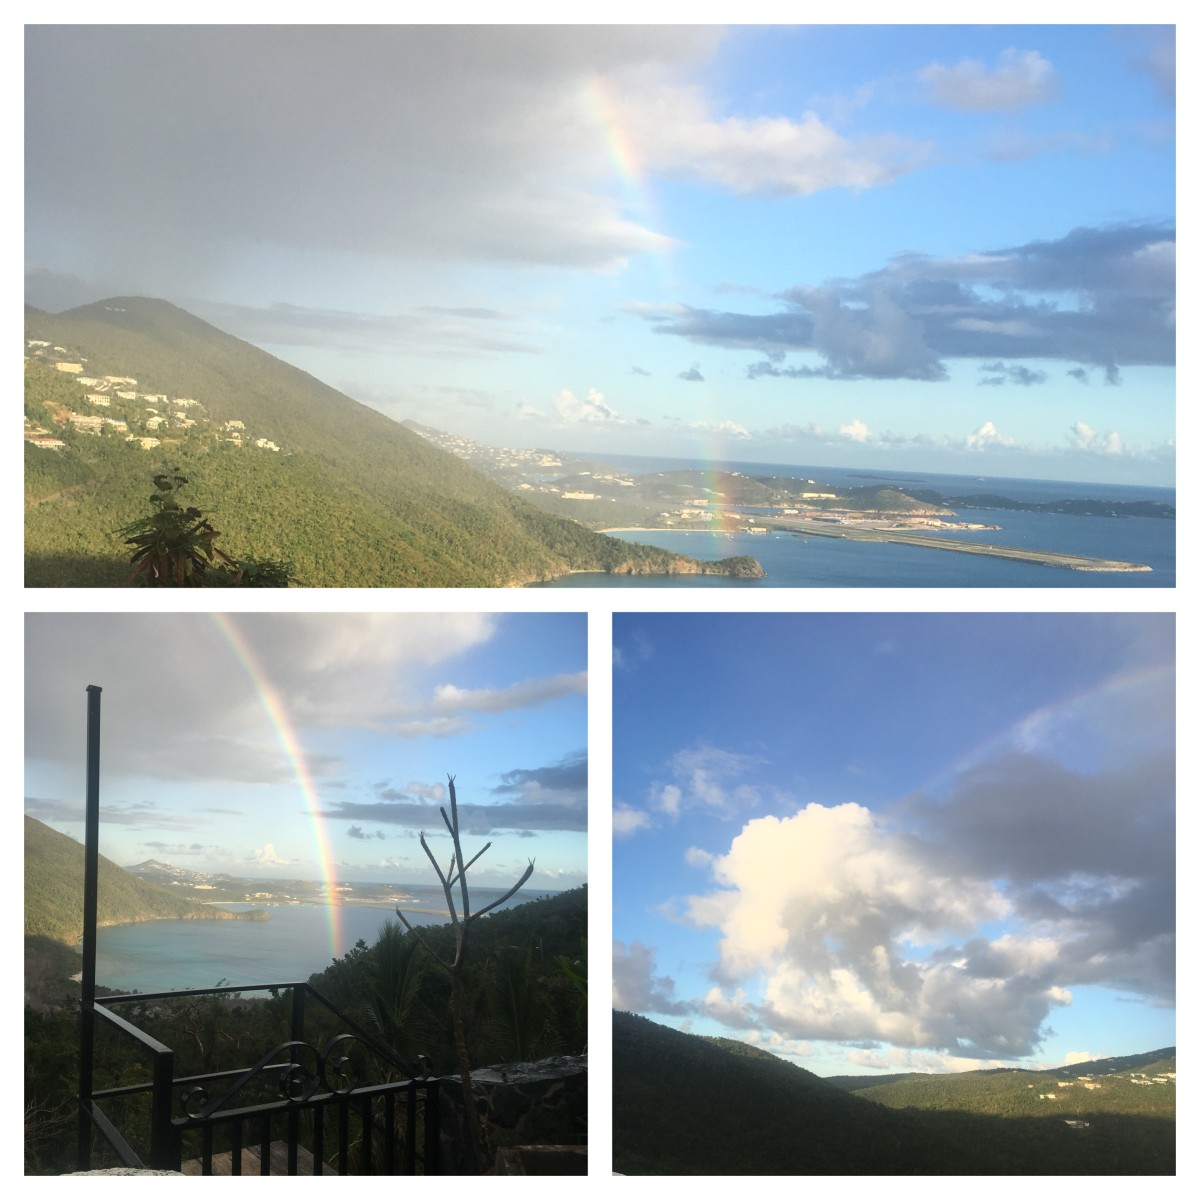 March 5, 2018 captured by Stanley P. Griffin. Brewers Bay, near airport.